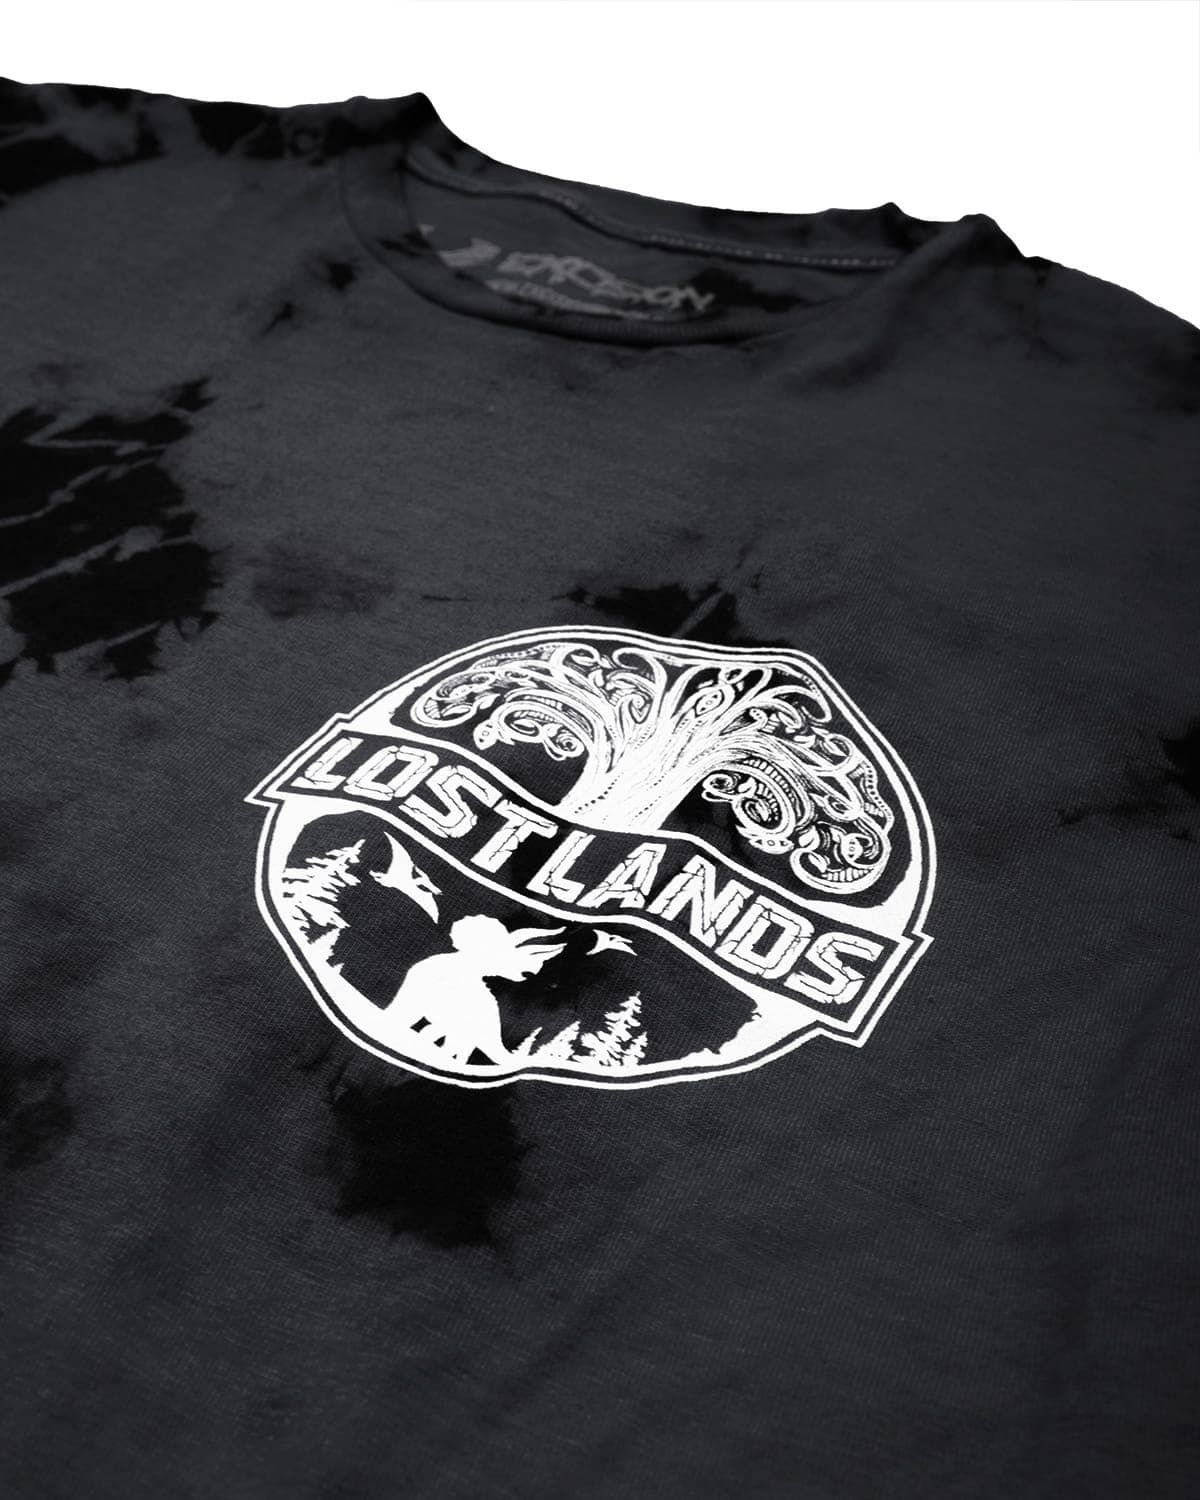 Official Lost Lands Tie Dye T-Shirt - Grey/Black